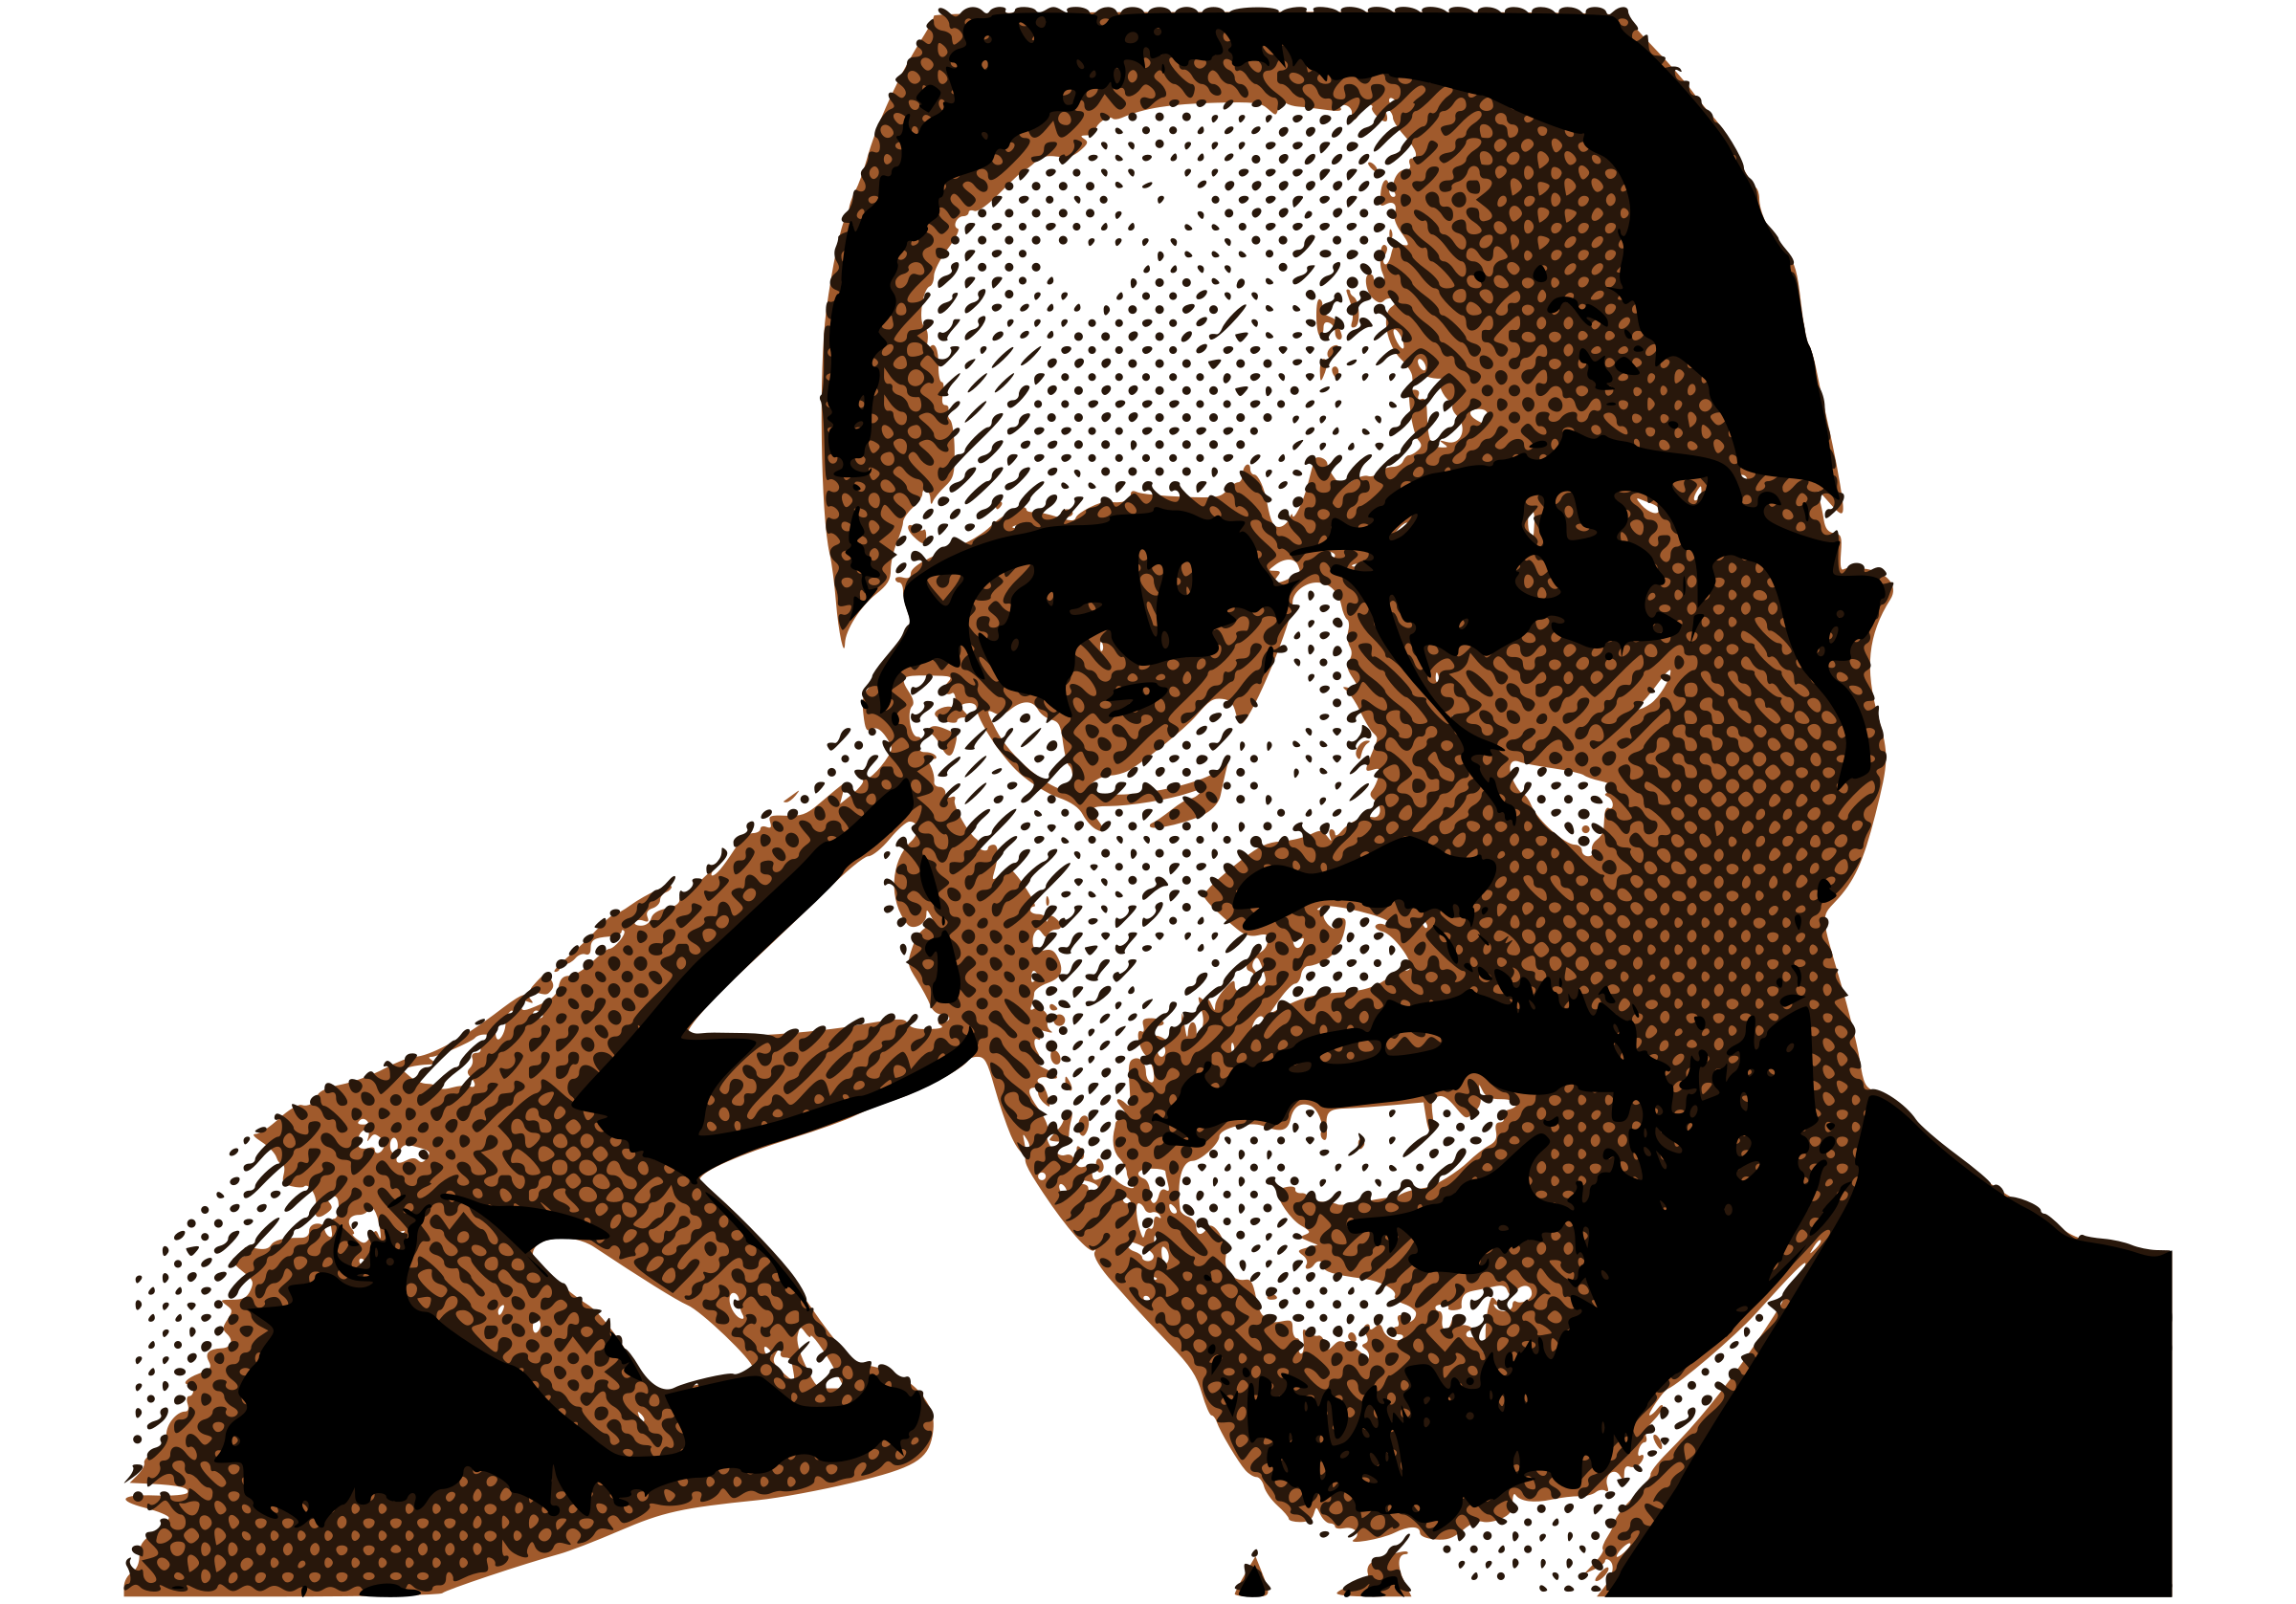 transparent download Big image png. Malcolm x clipart